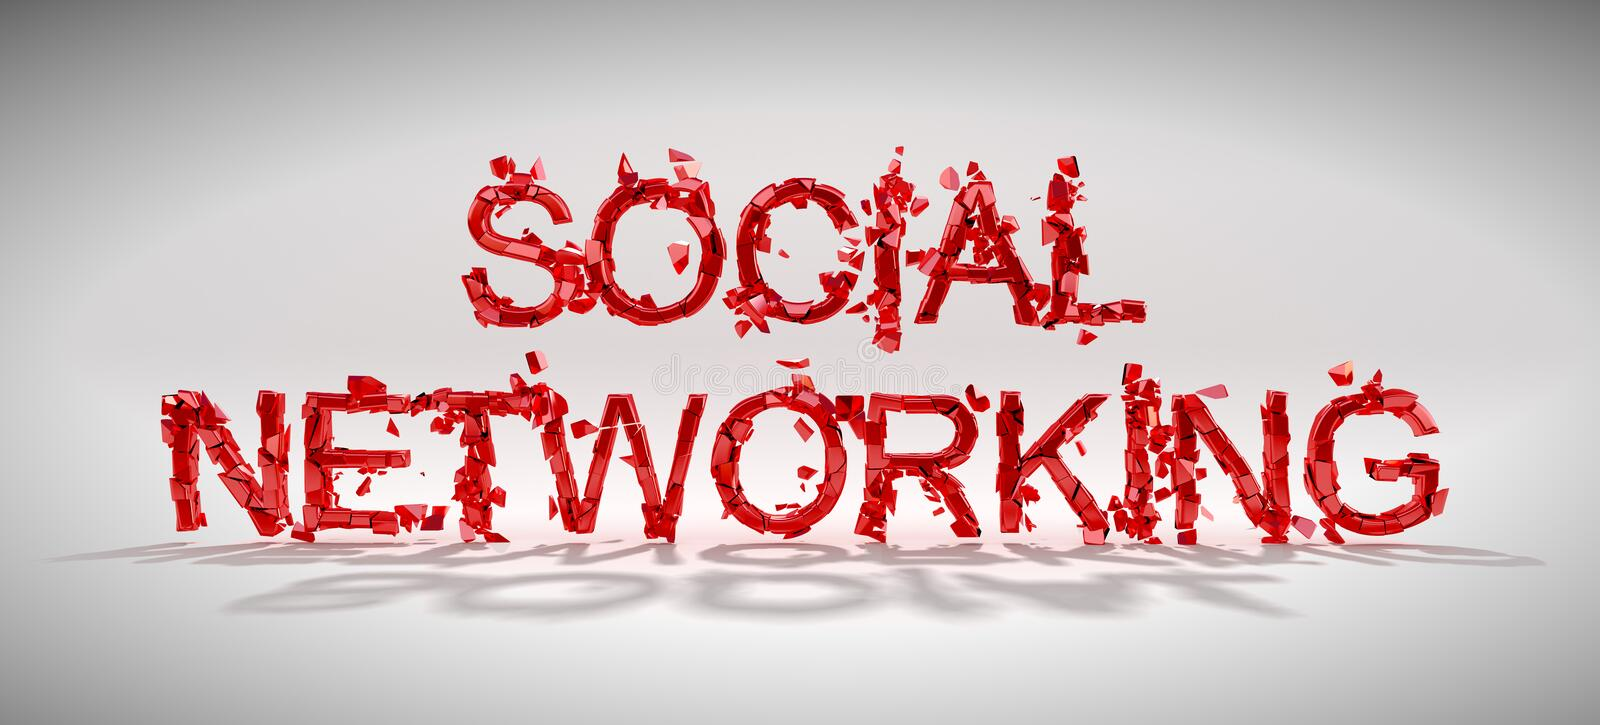 Social networking vulnerability concept royalty free illustration